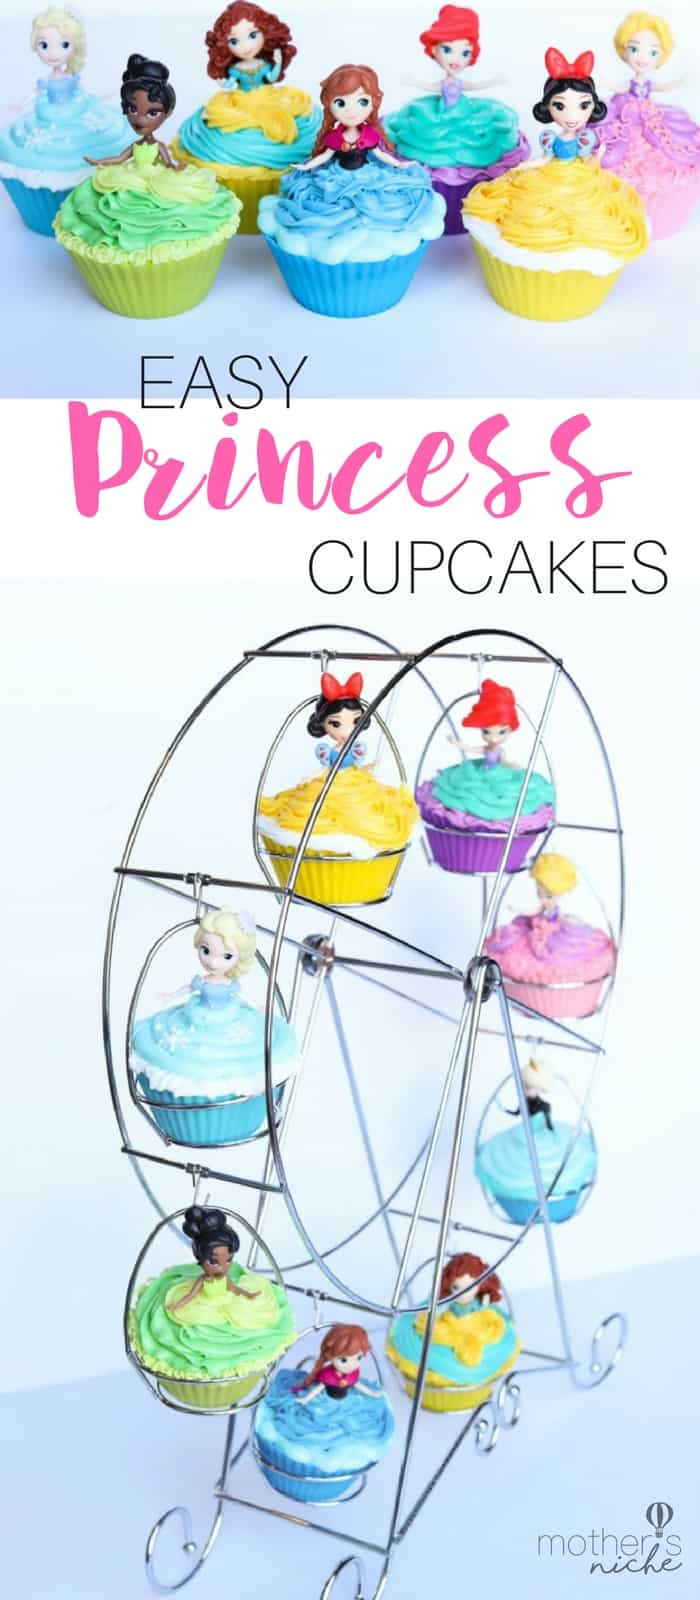 Easy Princess cupcakes that can easily be made into a princess birthday cake.